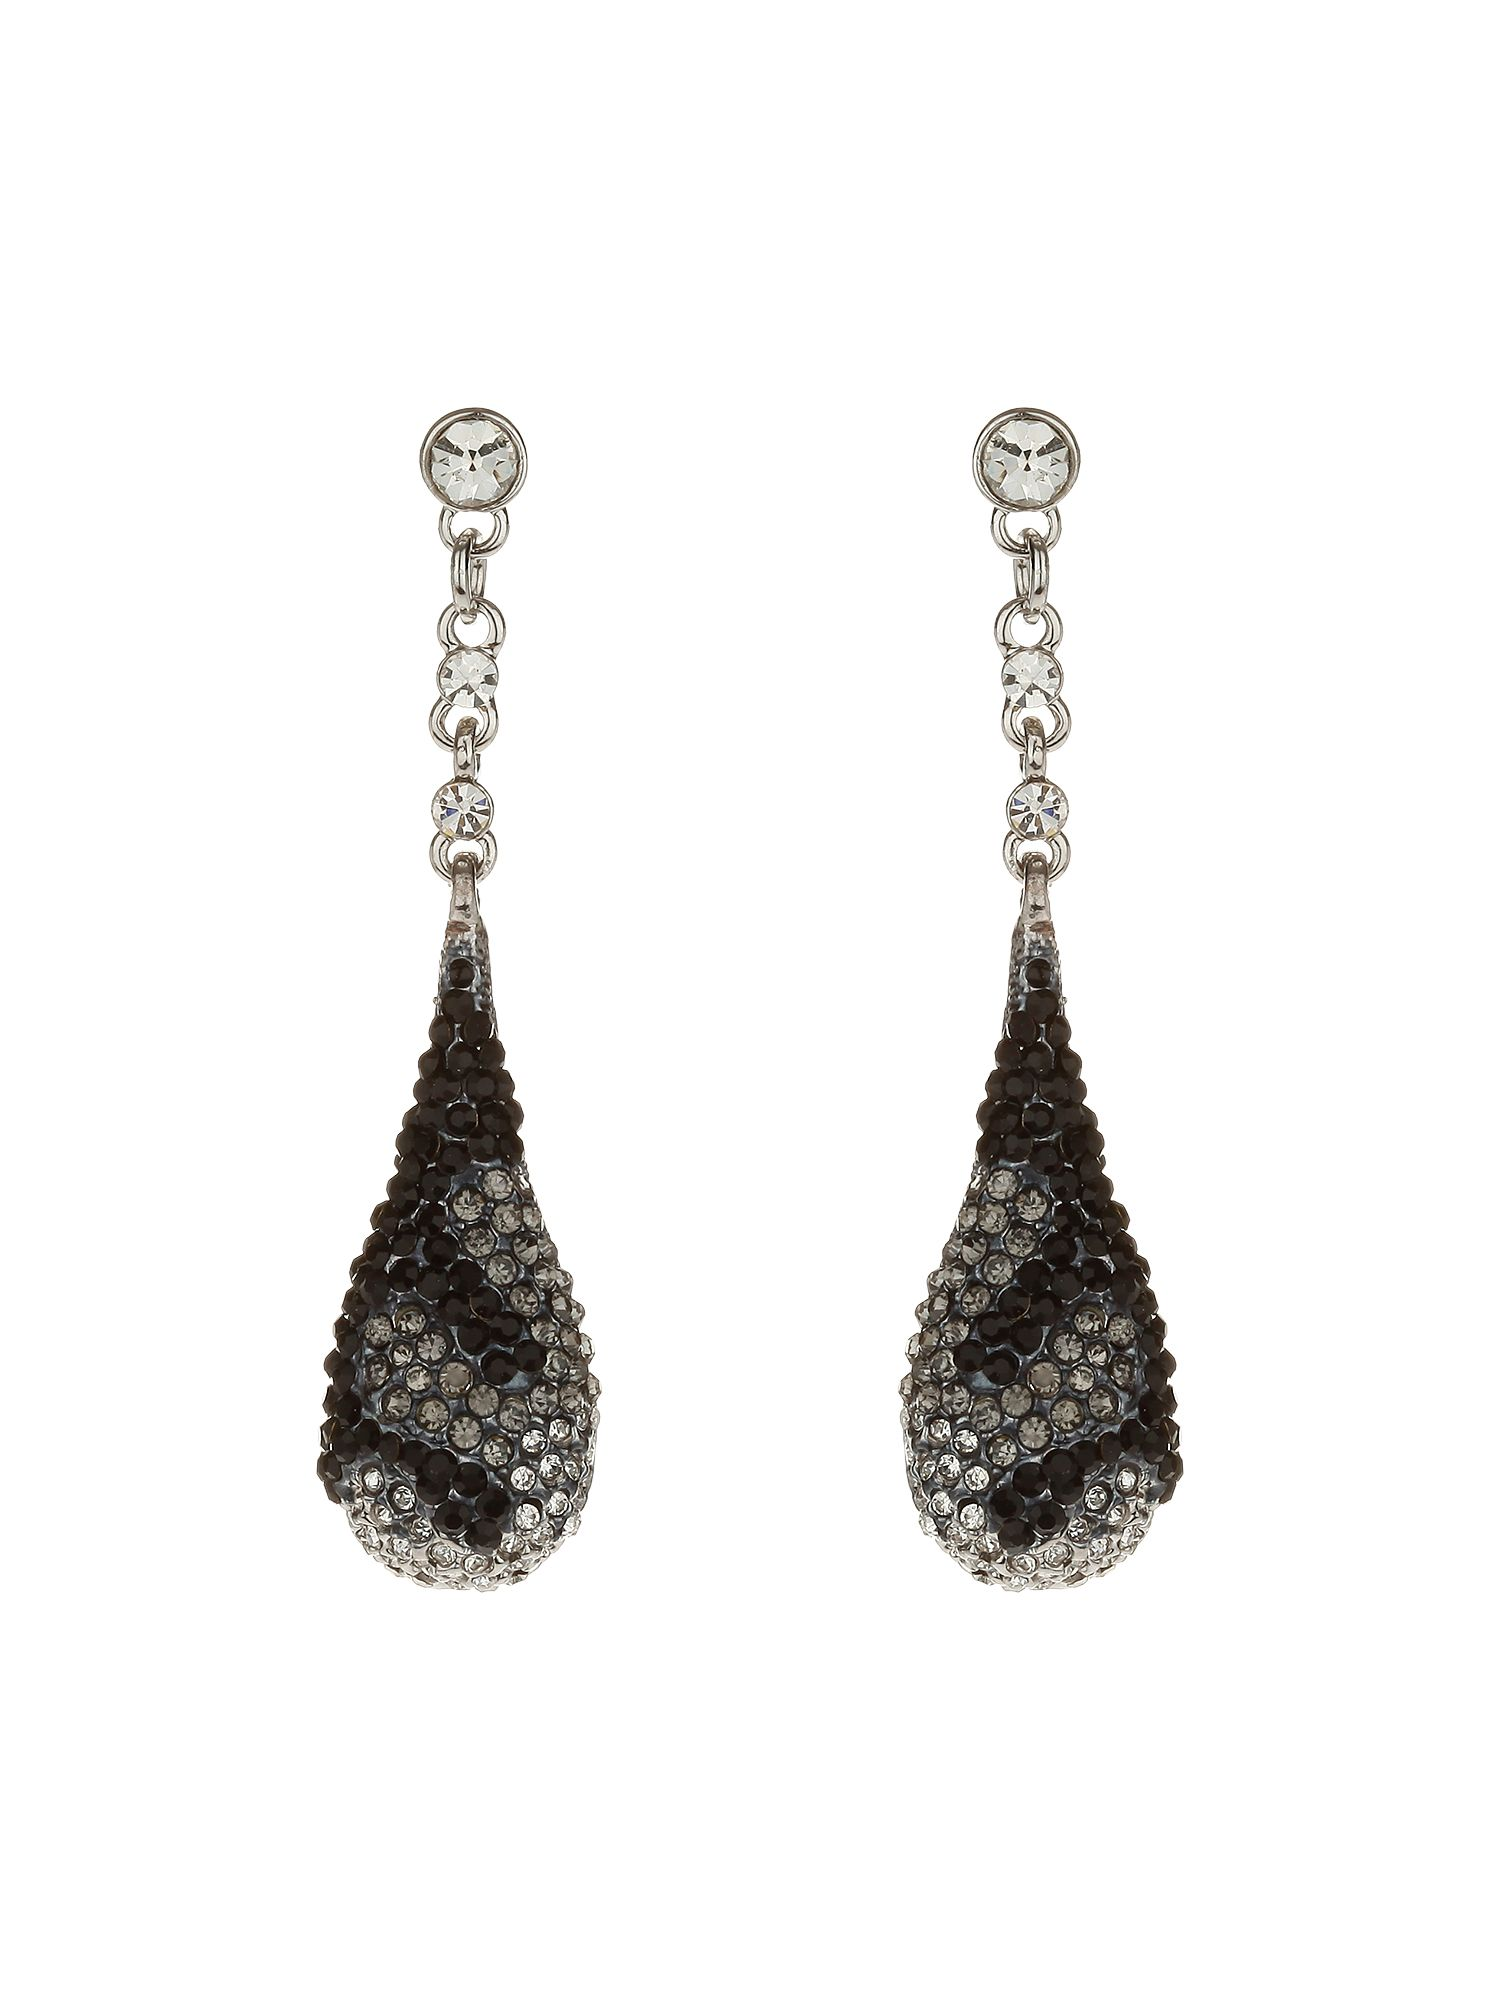 Oblong drop earrings